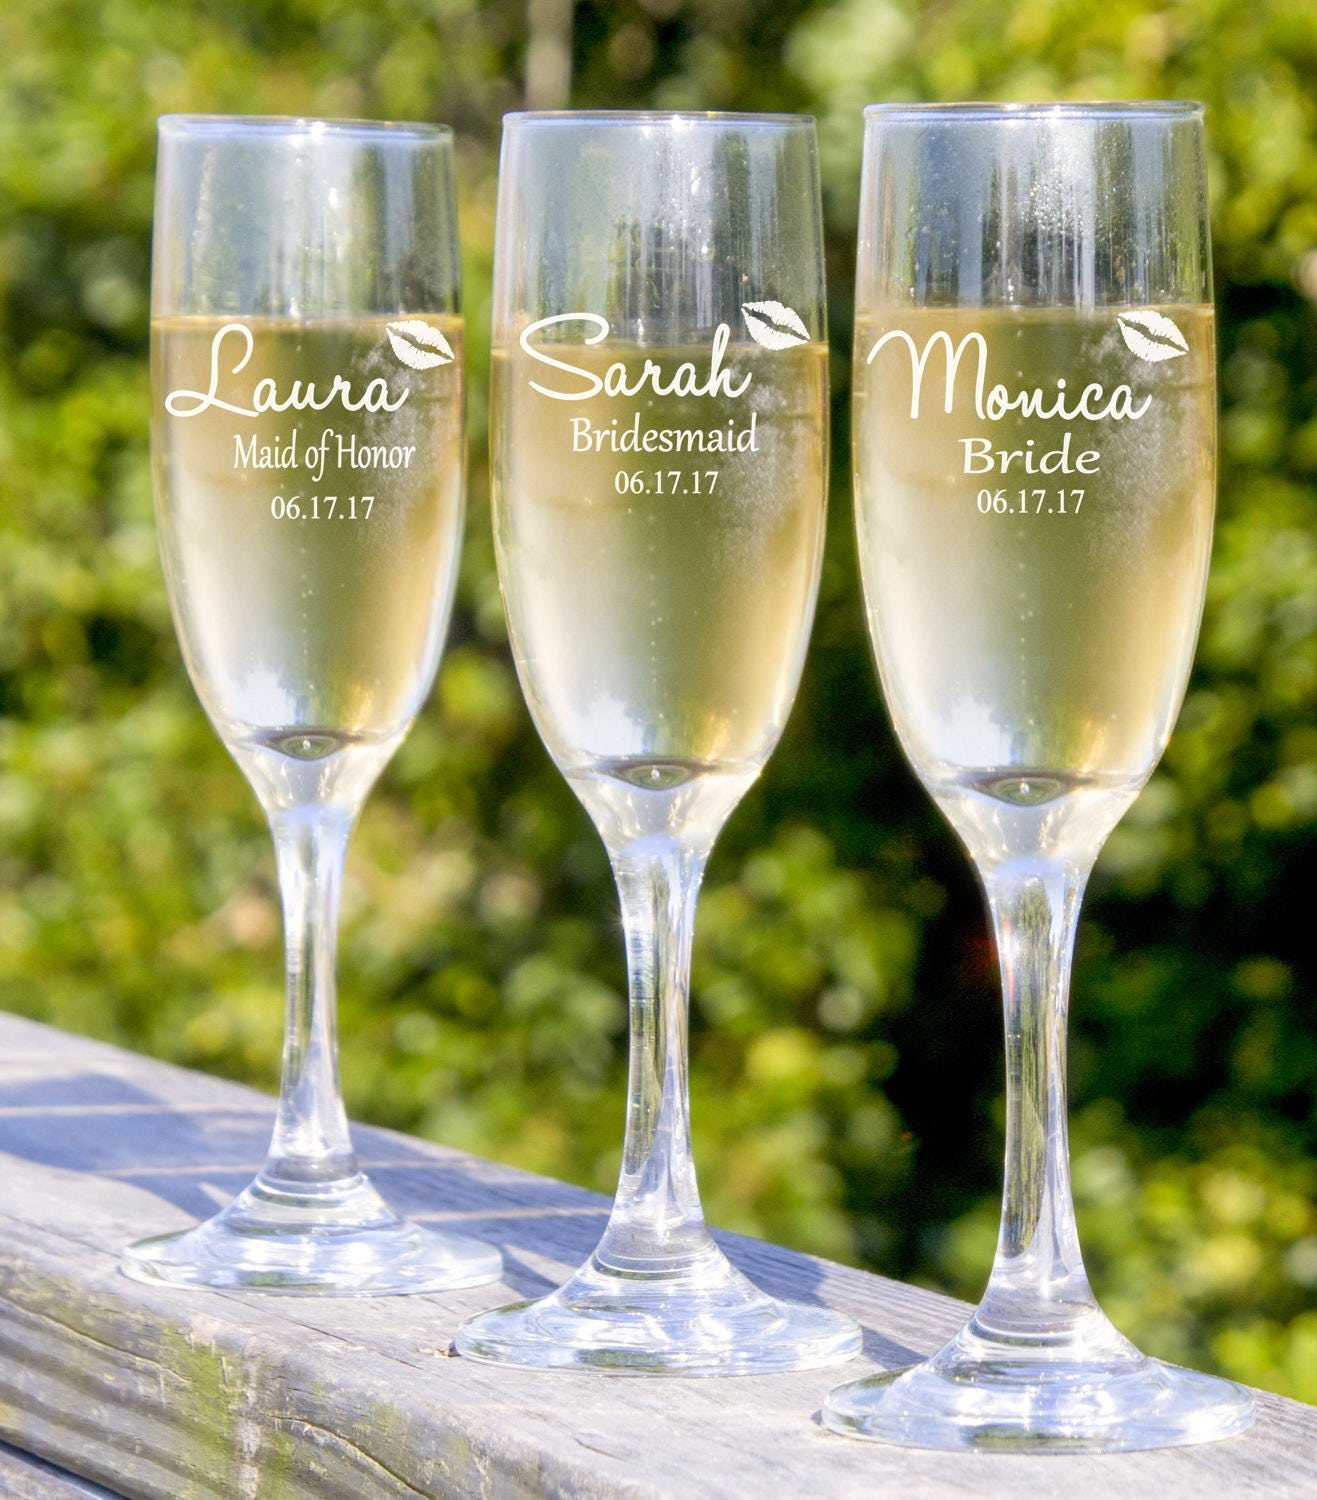 Wedding Gift Champagne Flutes: Bridesmaid Champagne Glasses Personalized Wedding Party Gift